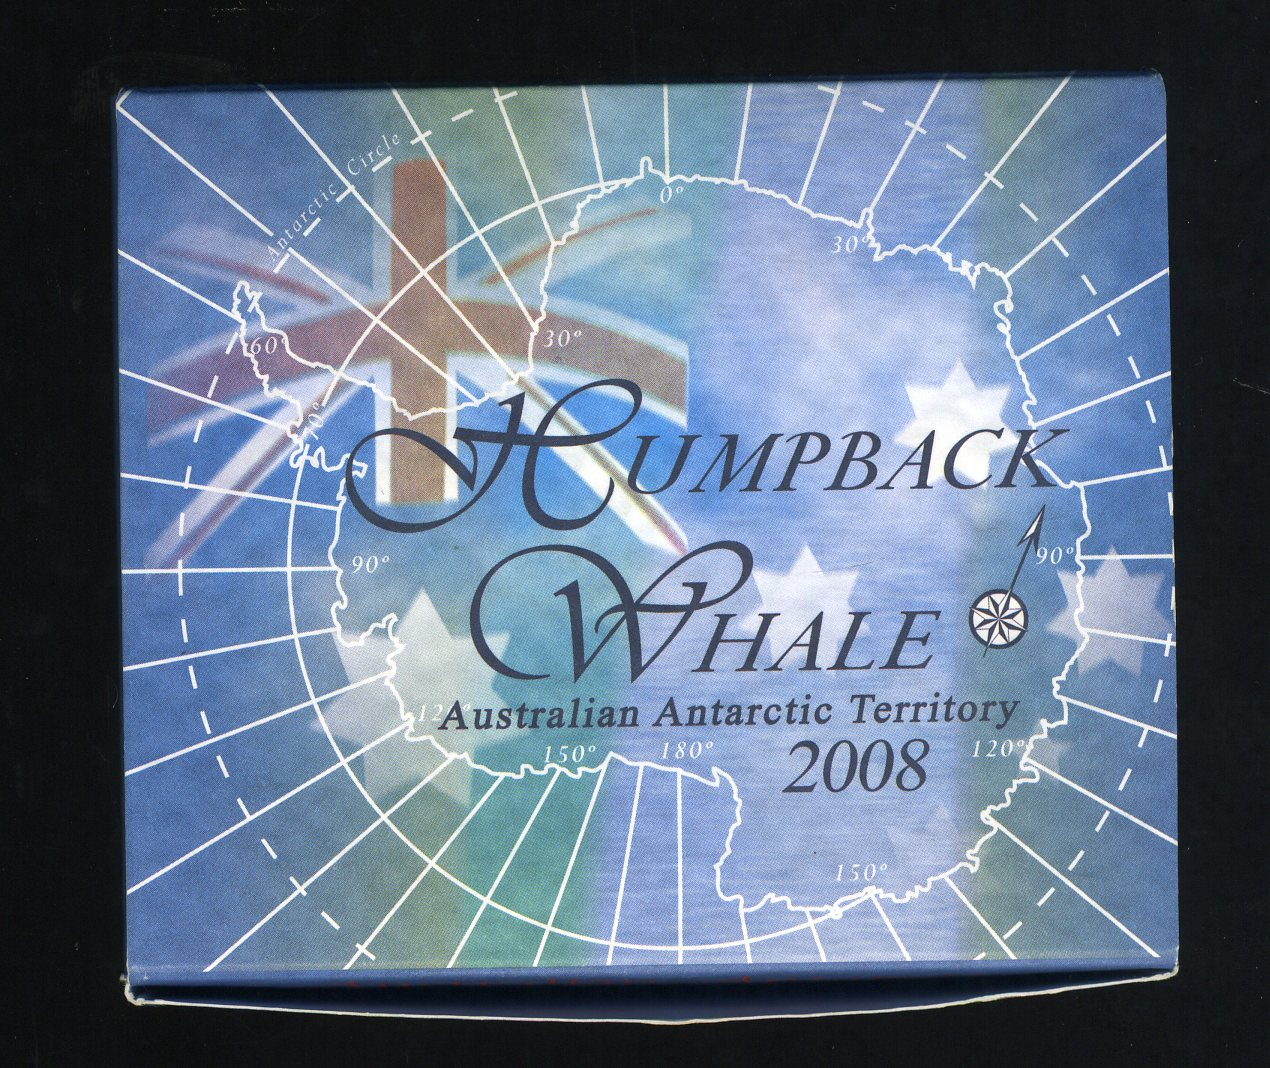 Thumbnail for 2008 1oz Coloured Silver Proof Coin Australian Antartic Territory - Humpback Whale